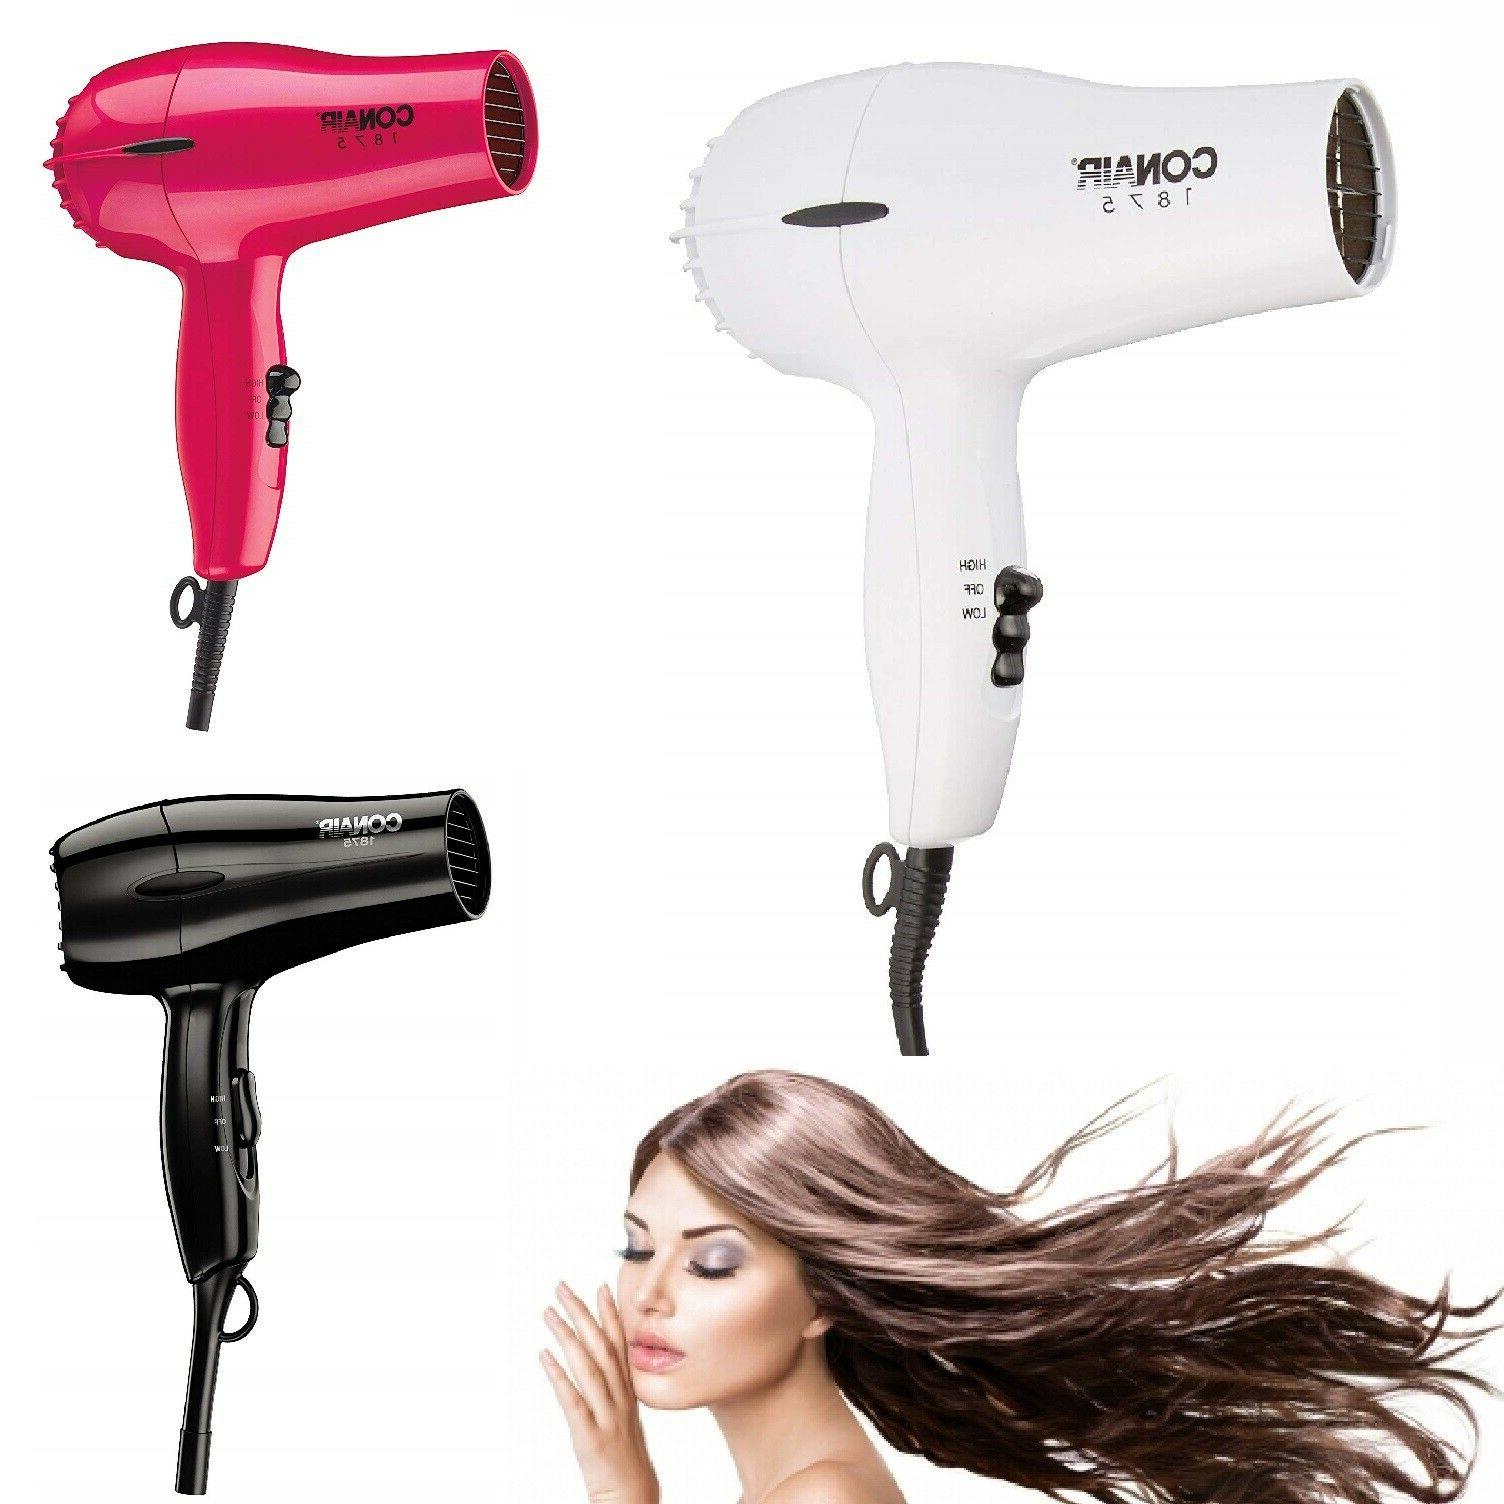 COMPACT HAIR DRYER 1875W Powerful 2 Heat Speed Blower Conair